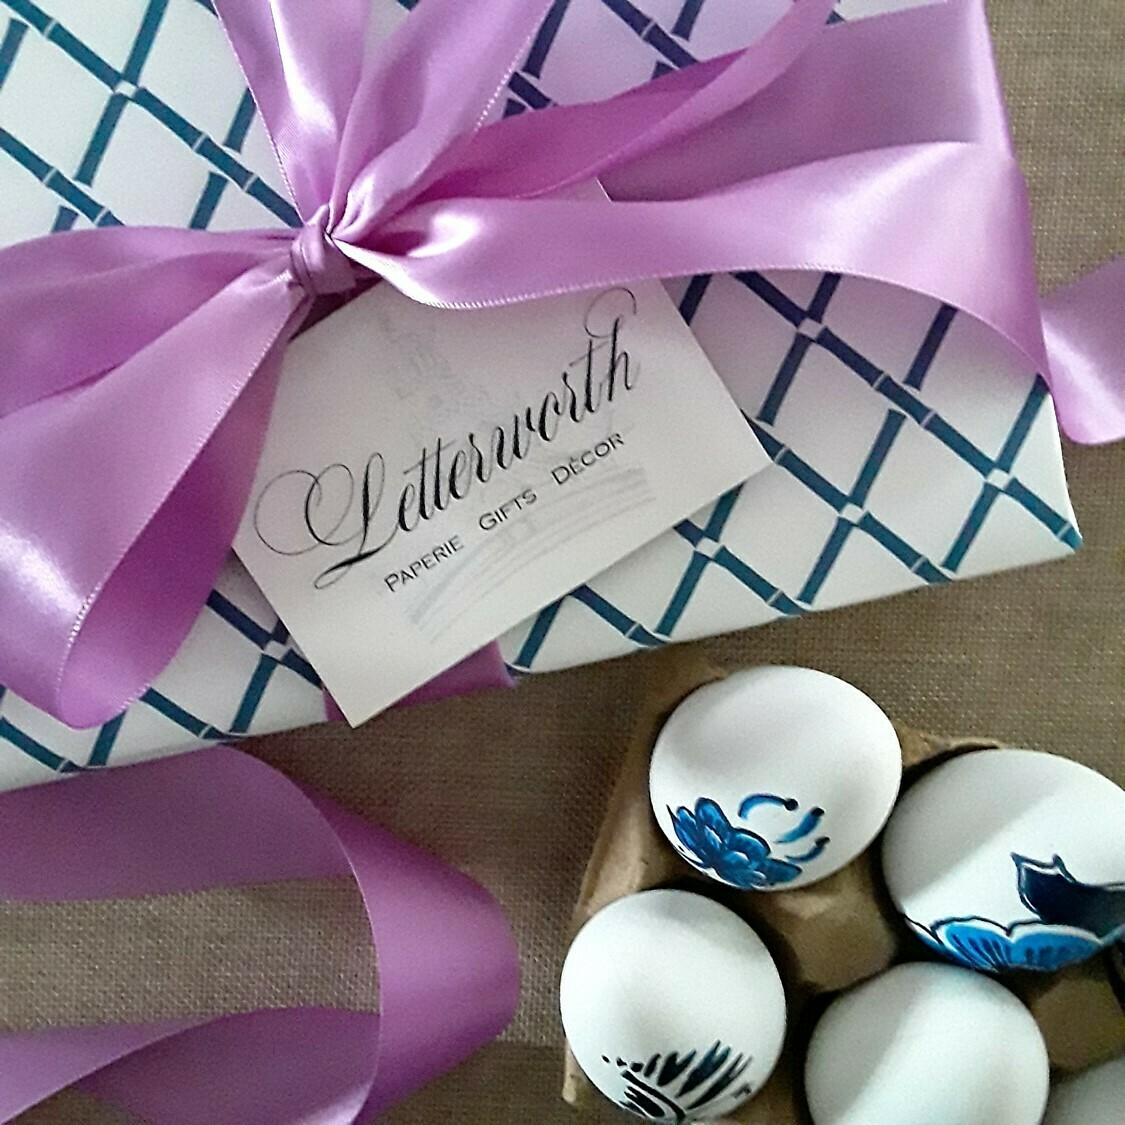 Classic Blue and White Bamboo Trellis Gift Wrapping Paper by Letterworth